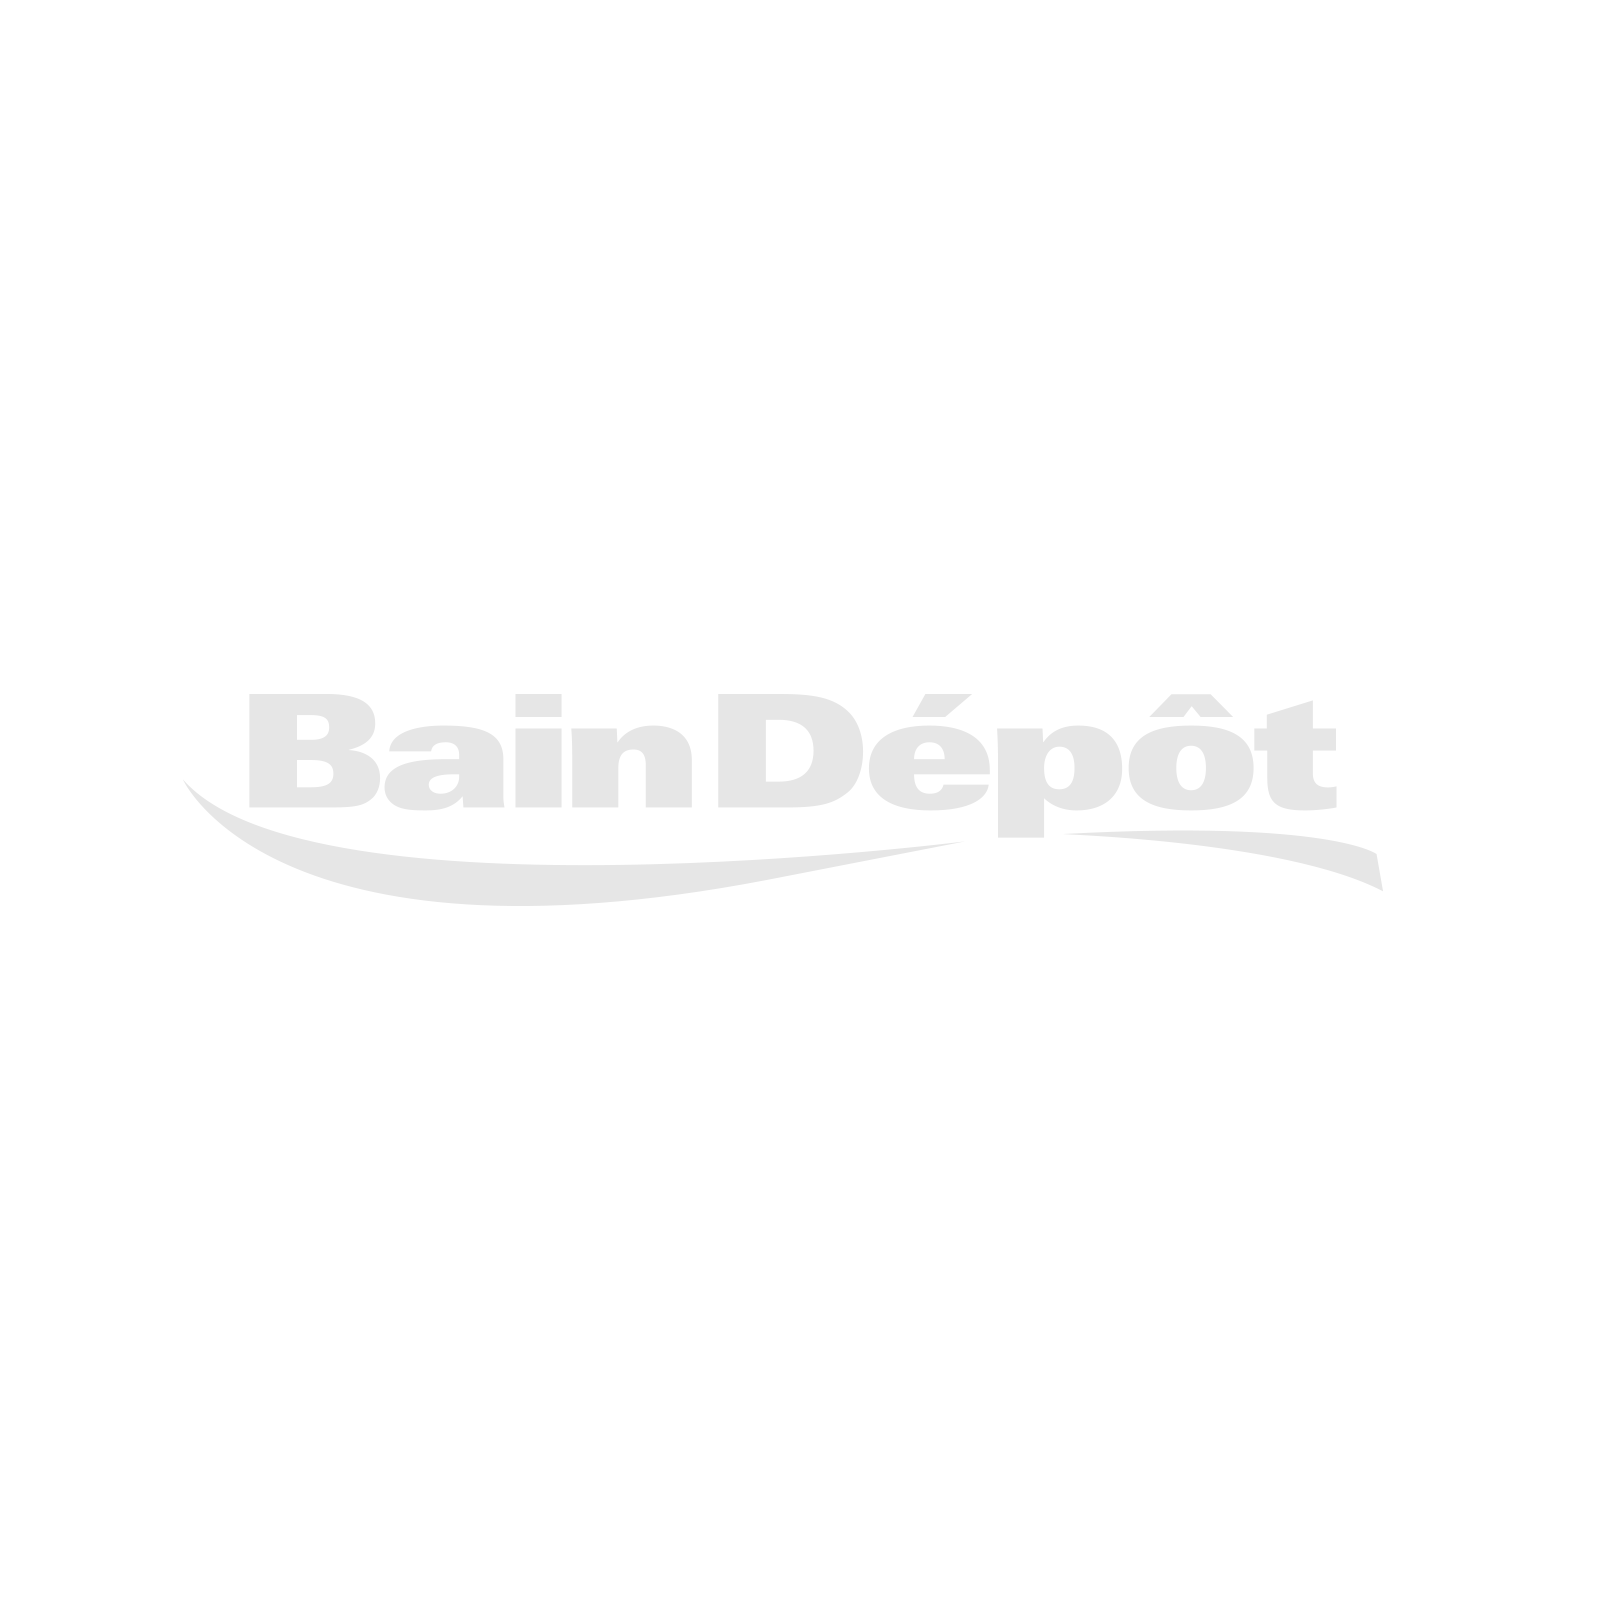 Angular chrome single-hole bathroom sink faucet with drain with pop-up